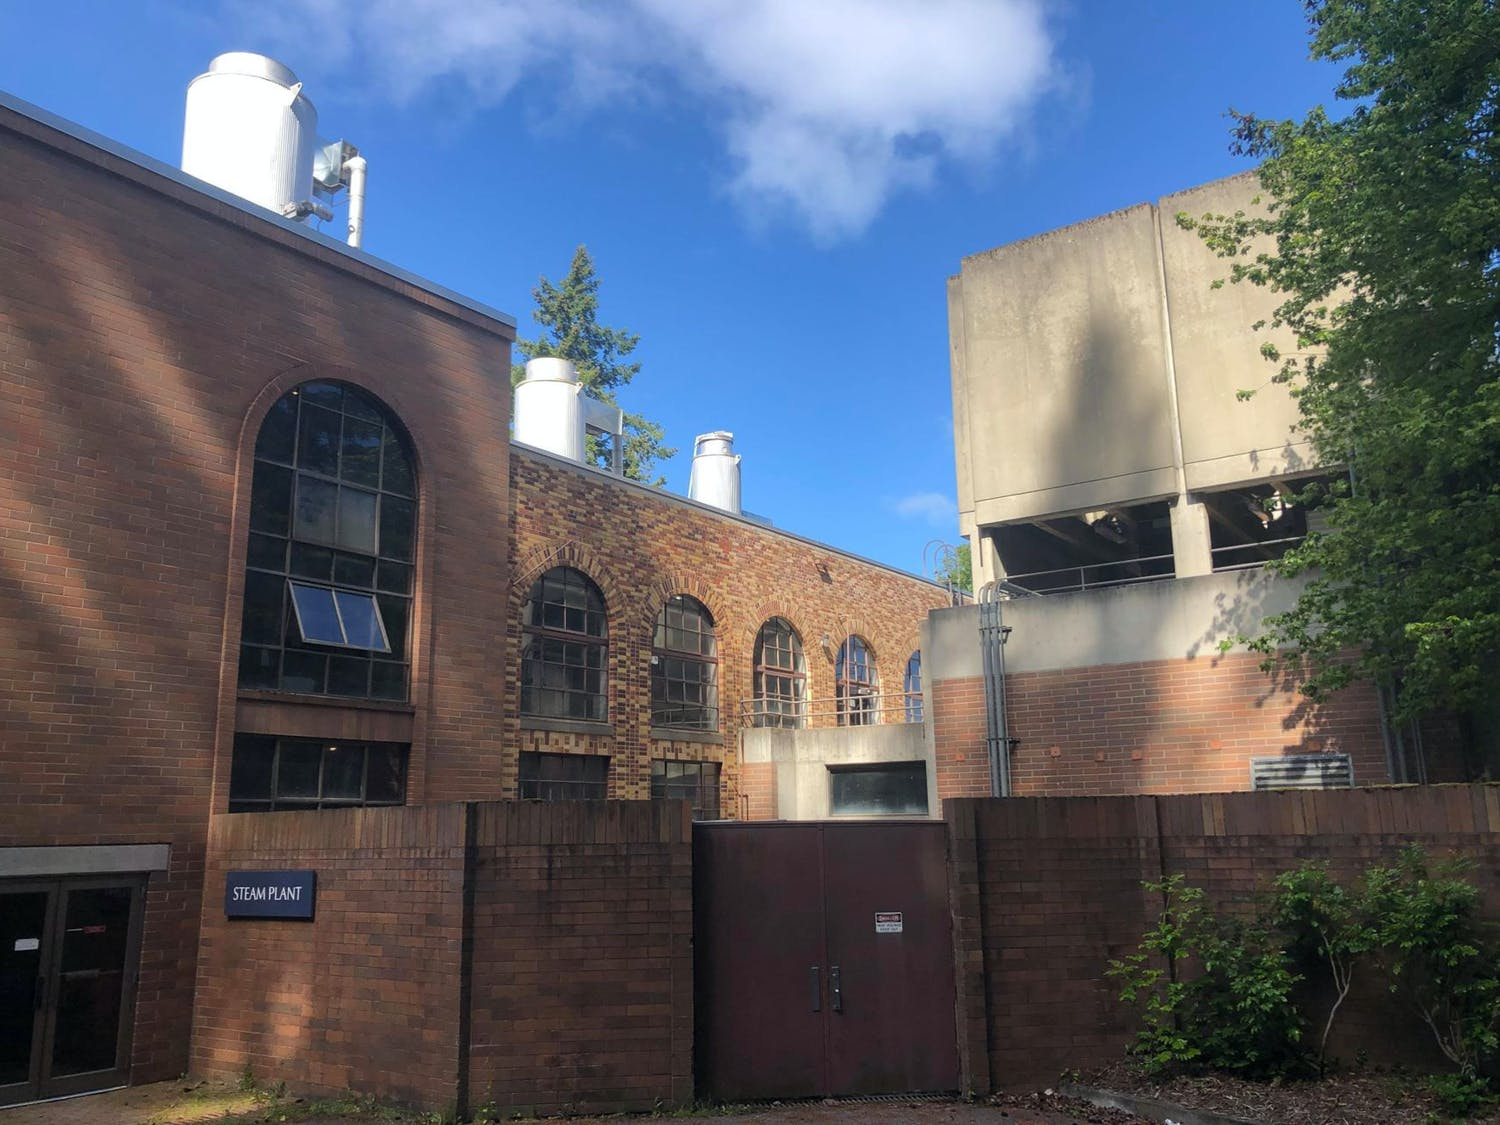 The Steam Plant provides heat on Western Washington University's campus by burning natural gas to boil water. A feasibility study has been funded to explore ways to make the steam plant more efficient and less dependent on fossil fuels. // Photo by Jacob O'Donnell